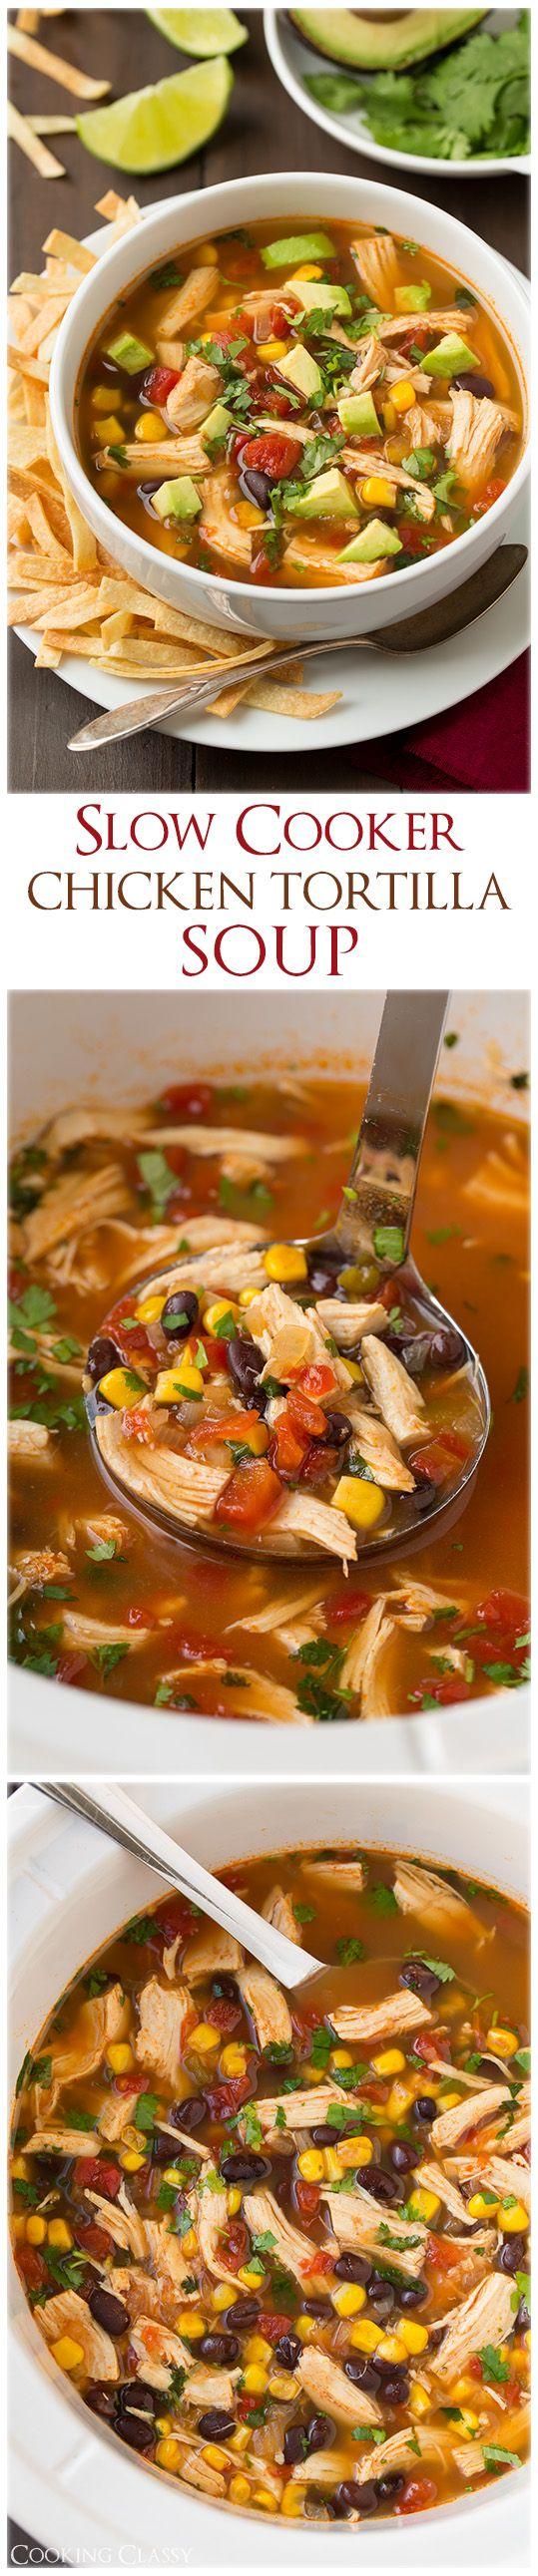 Slow Cooker Chicken Tortilla Soup - my whole family loved this! Adding